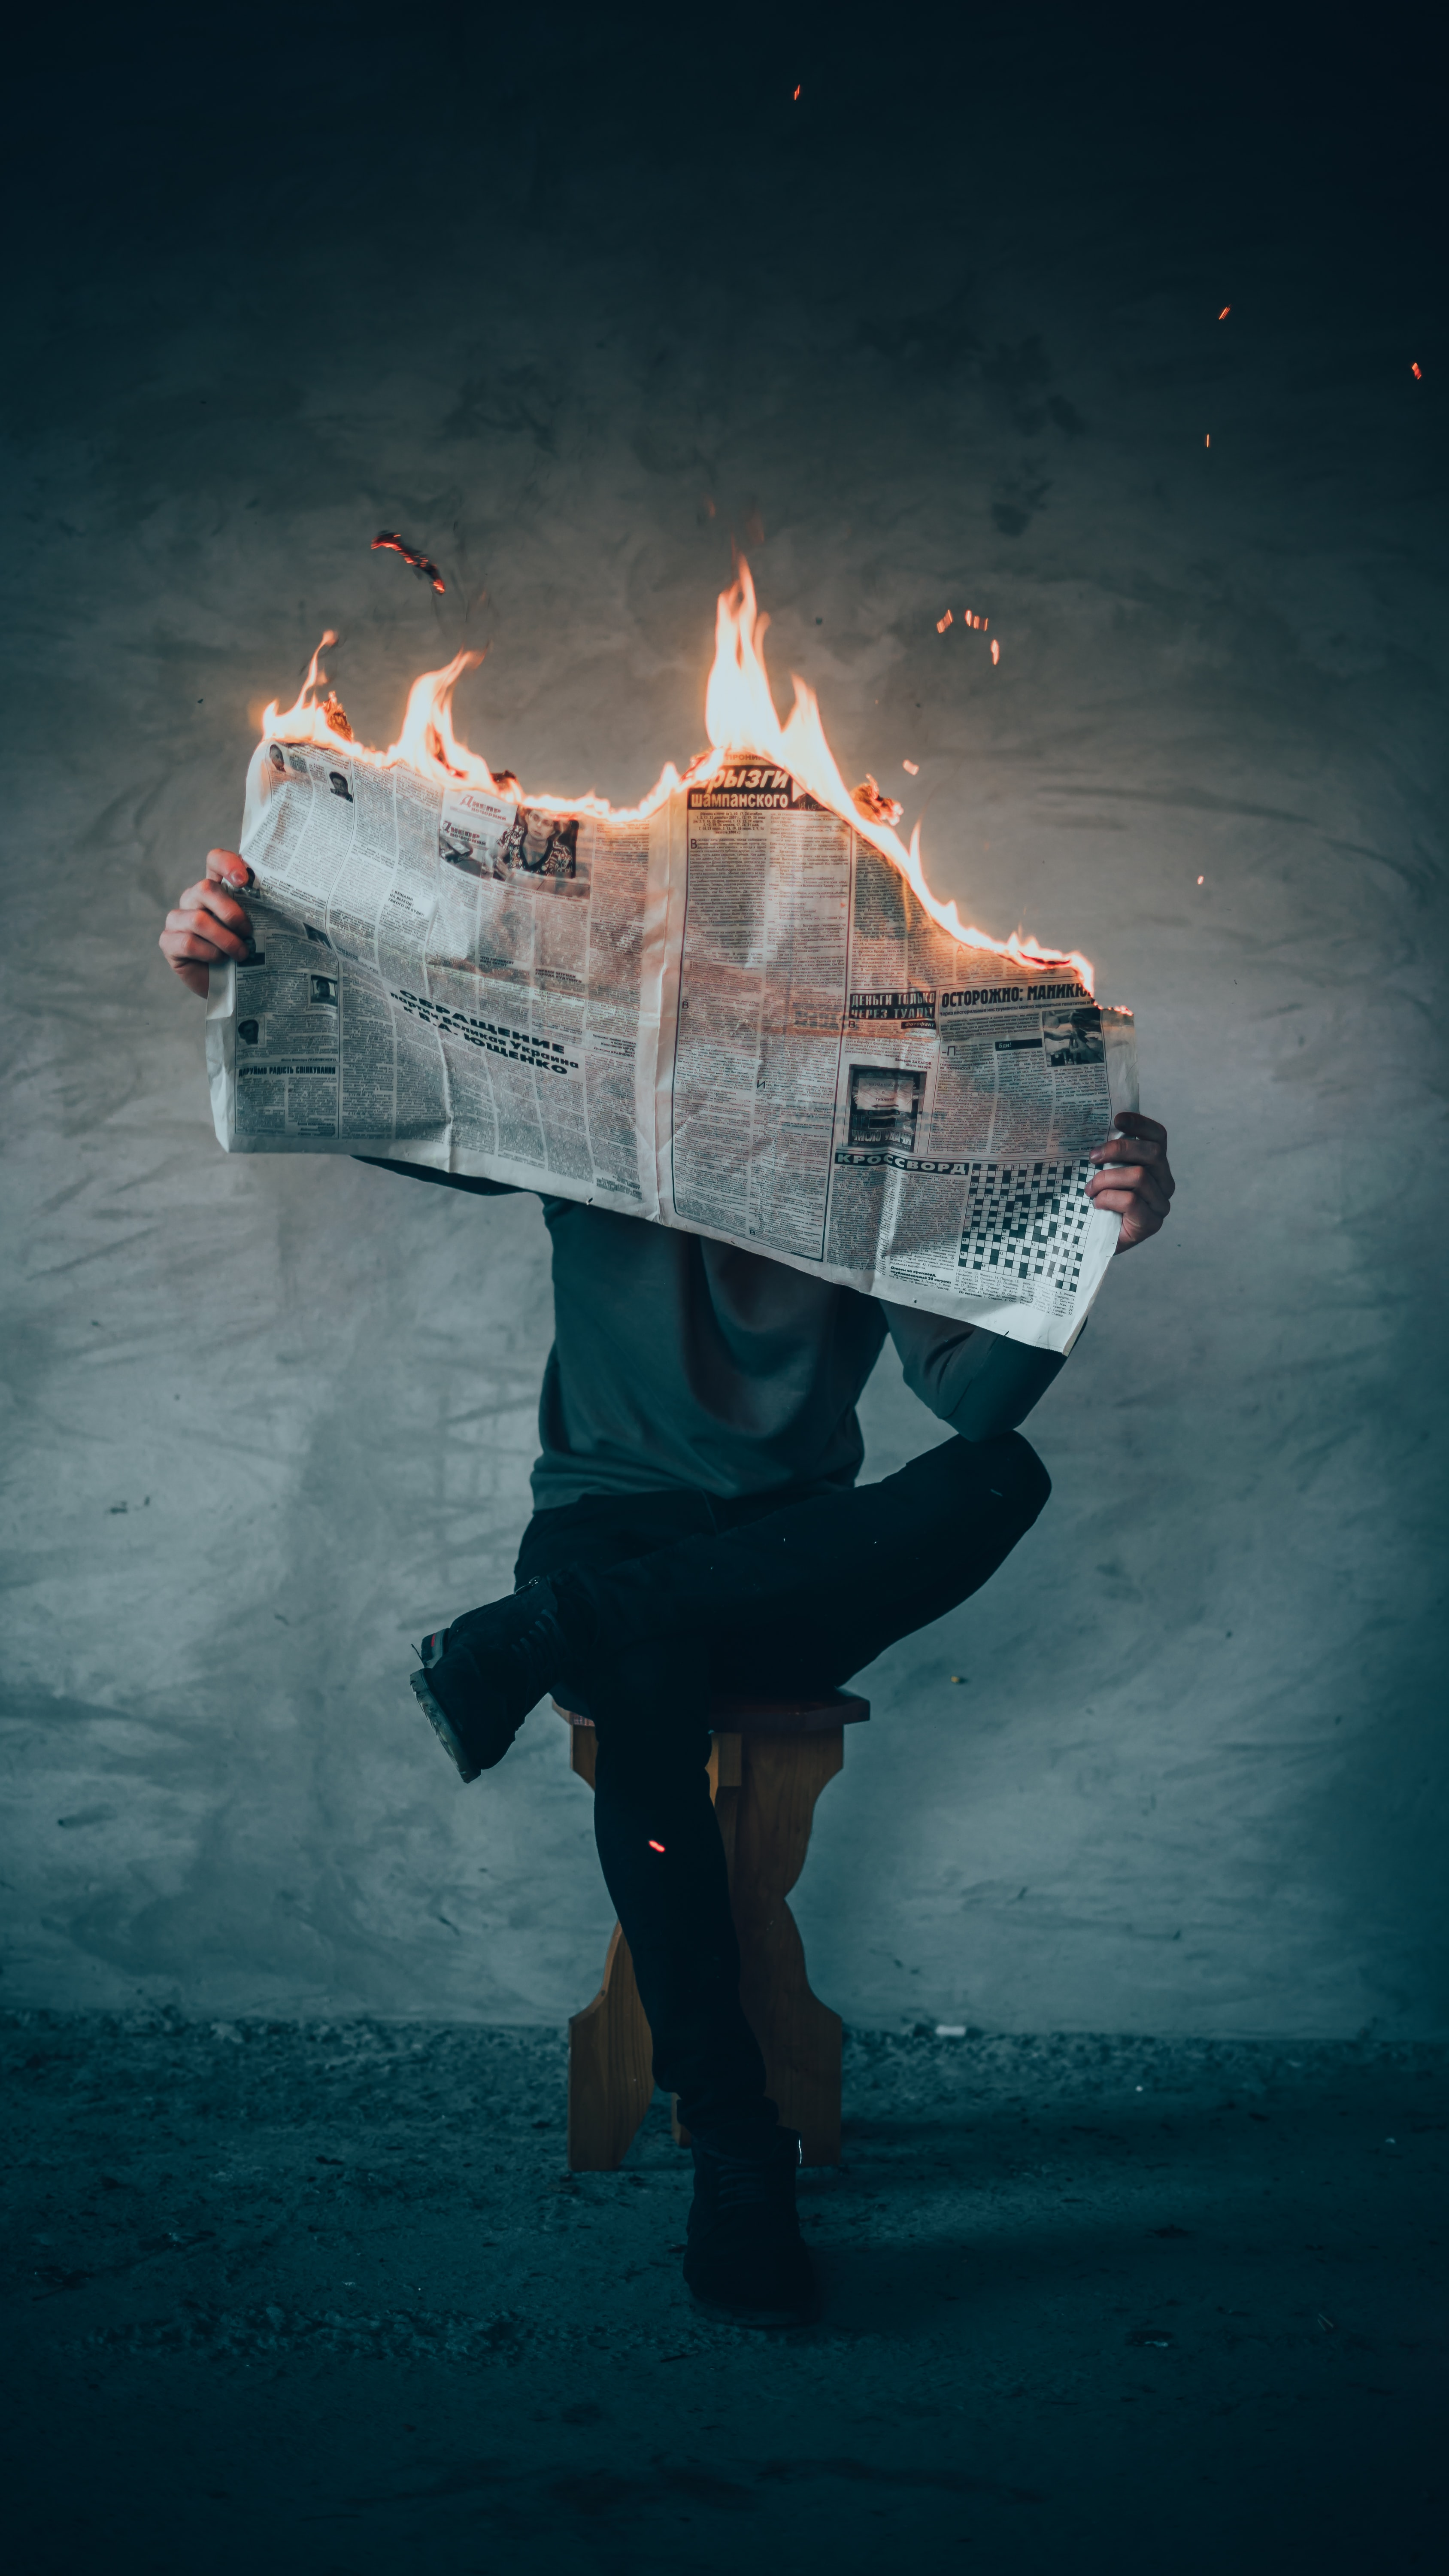 surrealism photography of person reading news paper in fire while sitting on stool